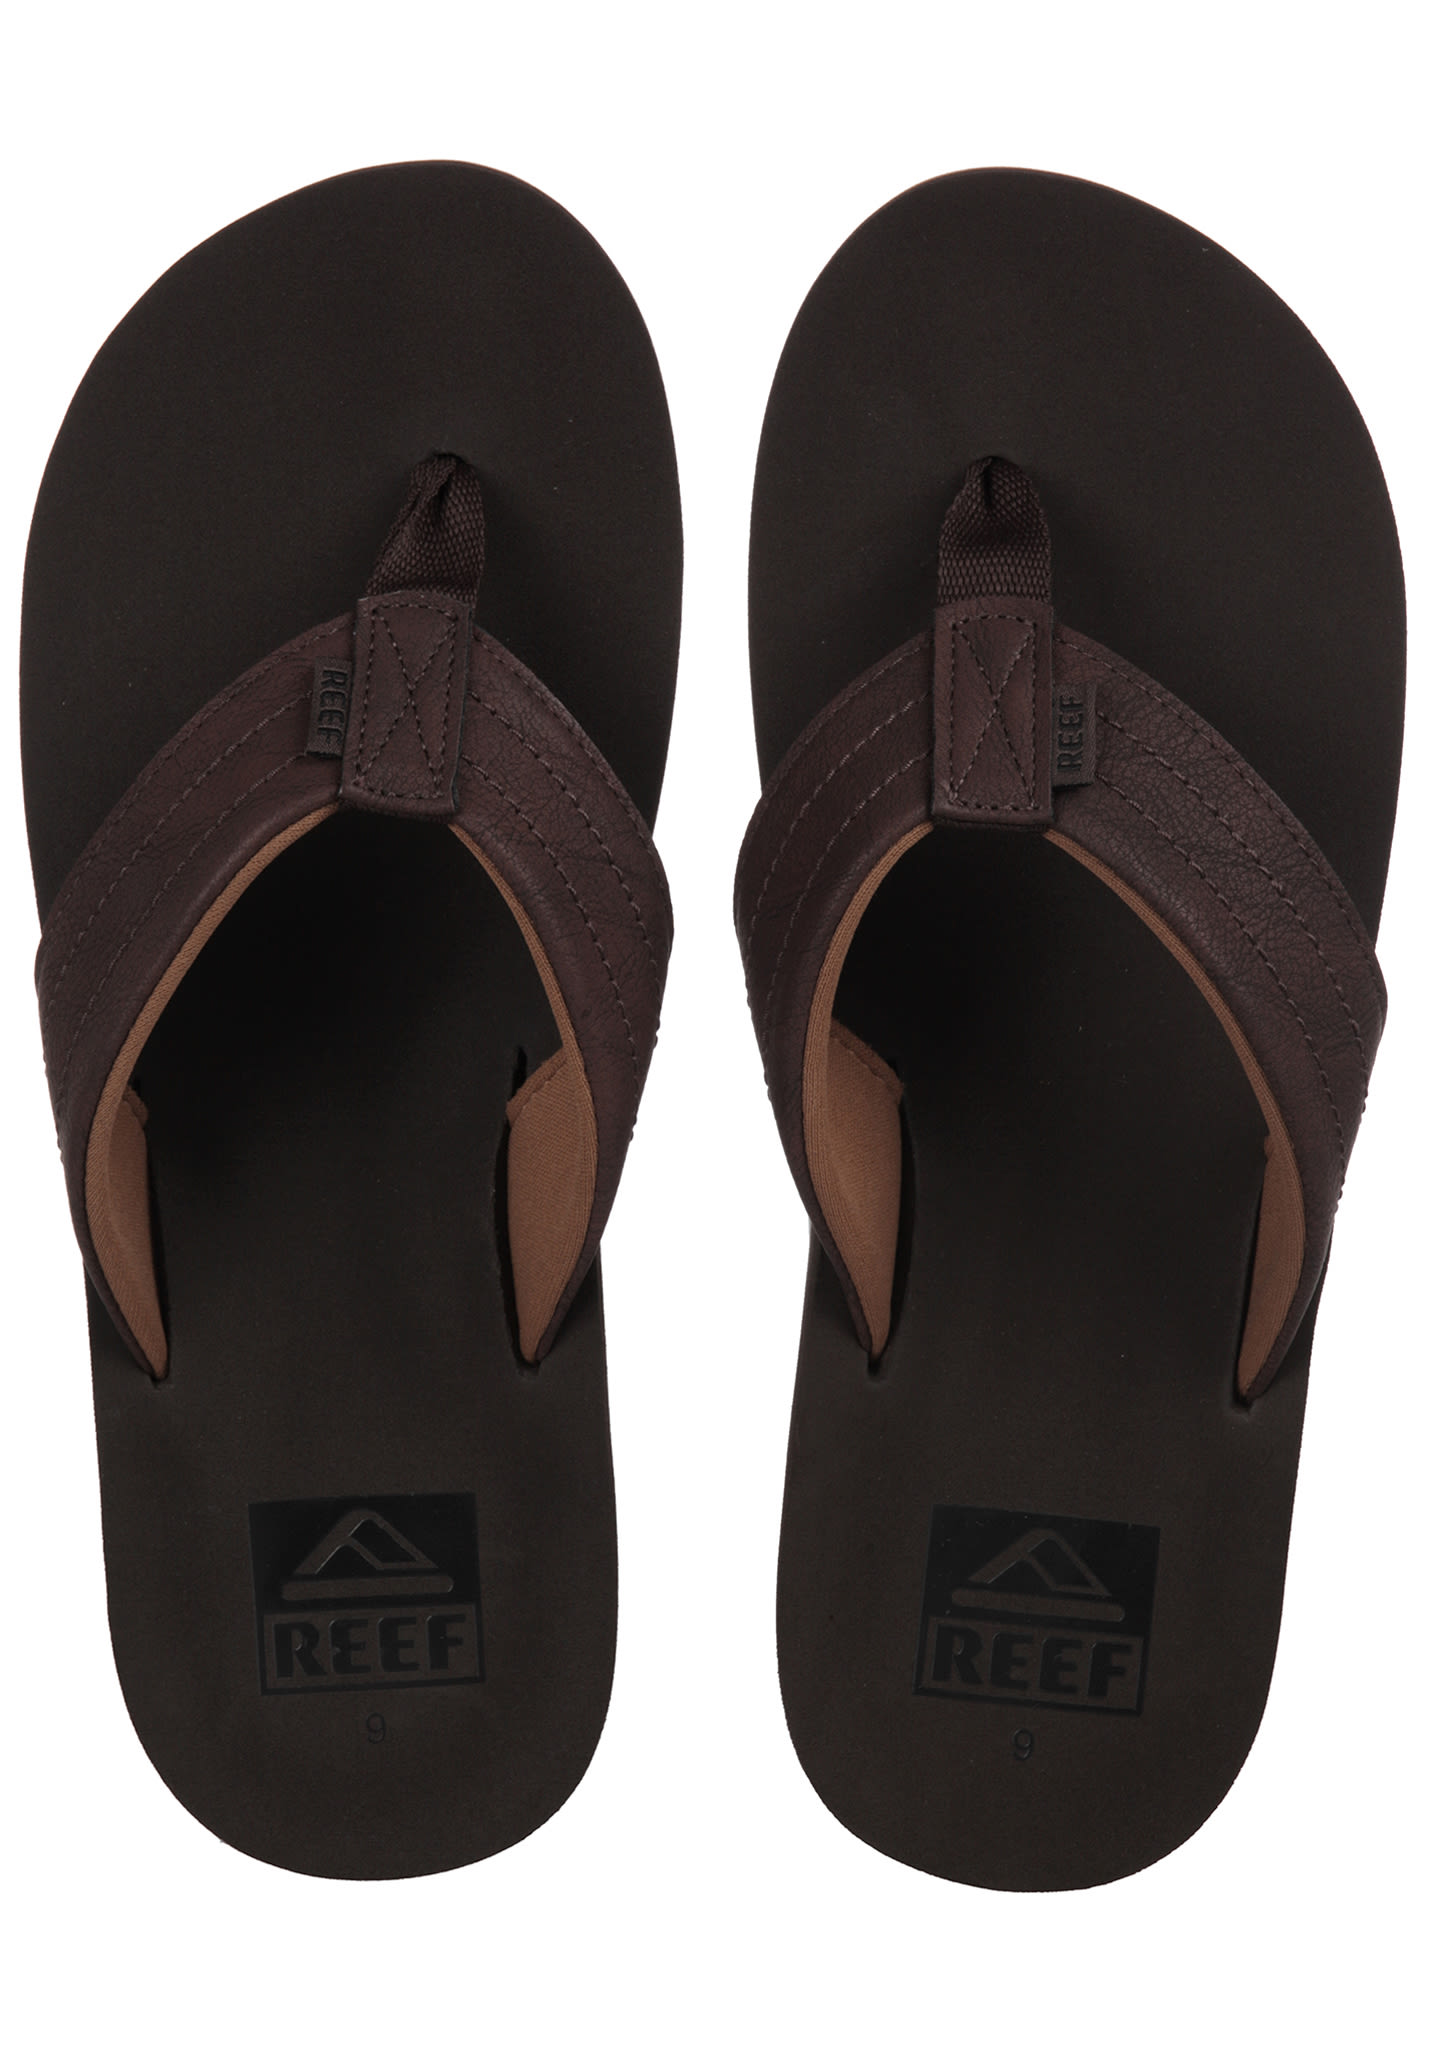 9abe3e6b9 Reef Twinpin Lux - Sandals for Men - Brown - Planet Sports